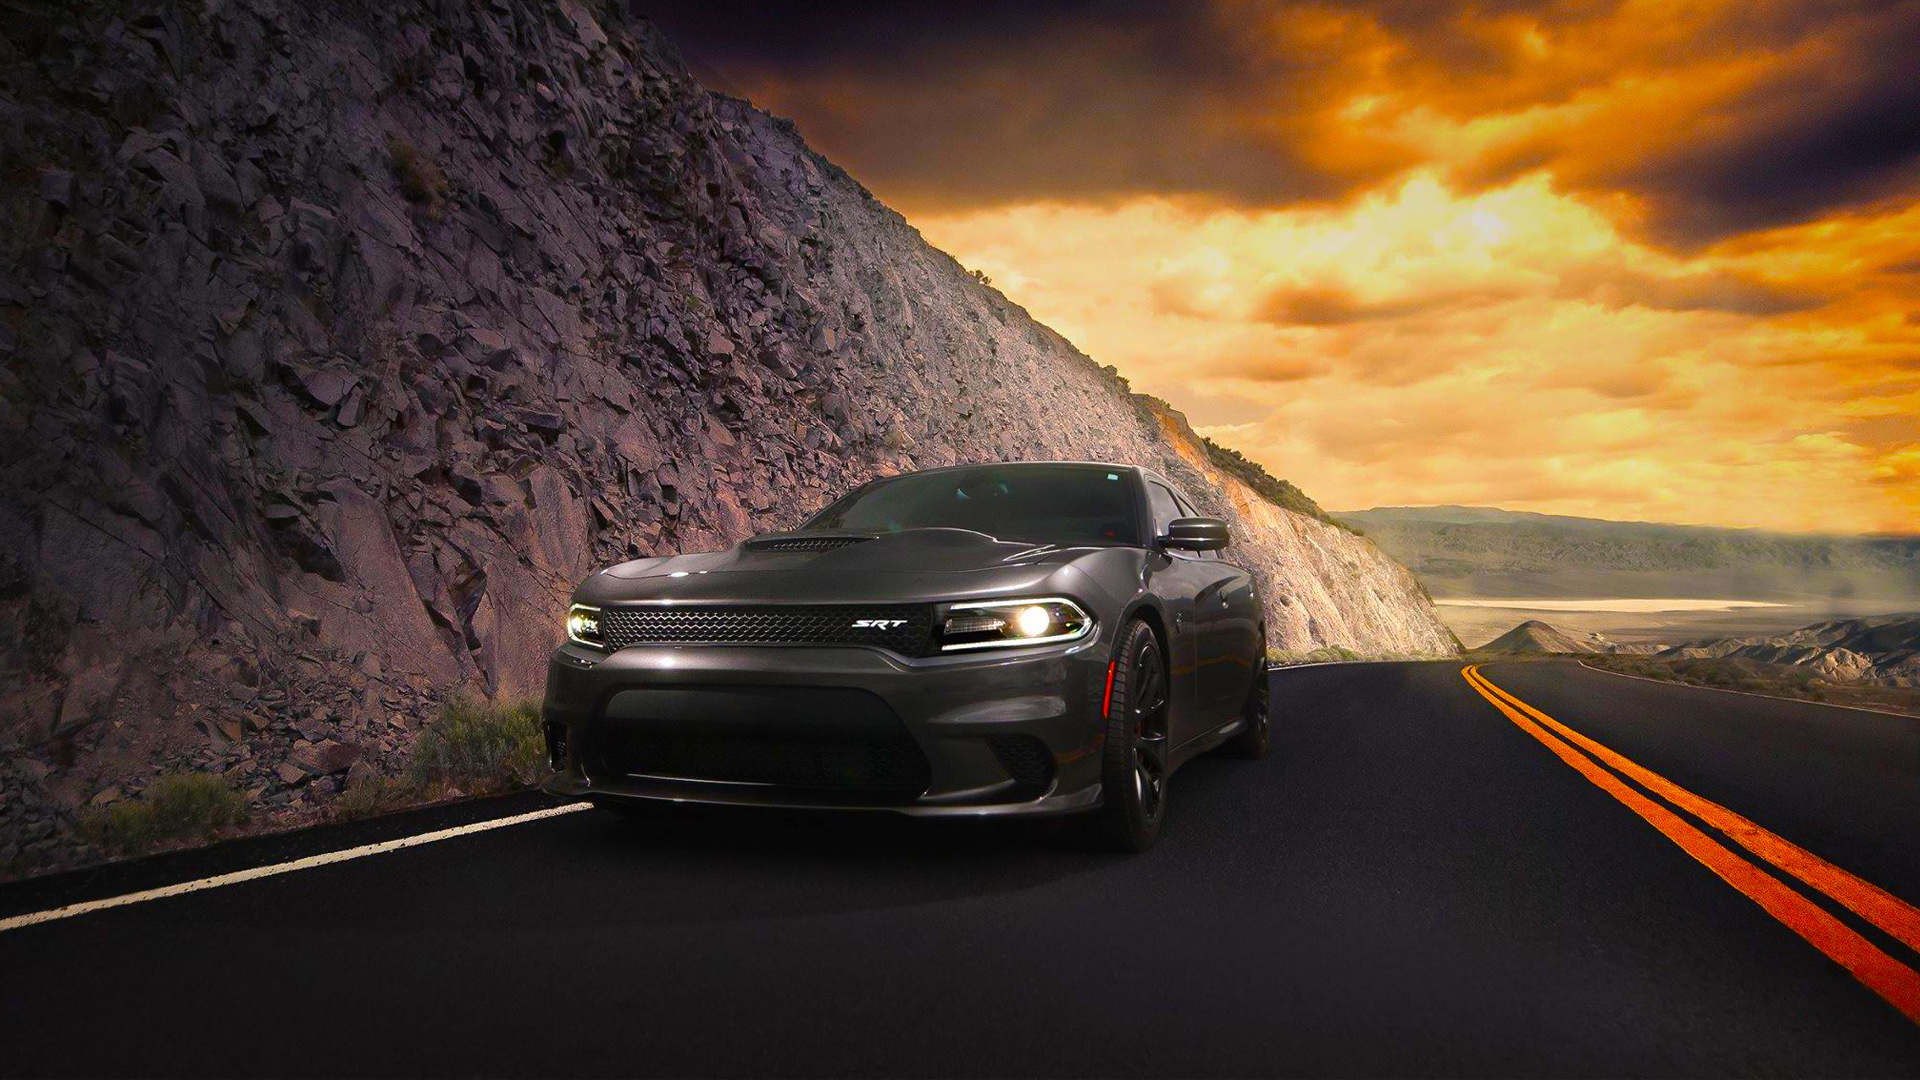 Make it easy with our tips on application. Dodge Charger Srt Hellcat 2015related Car Wallpapers Wallpaper Cars Wallpaper Better